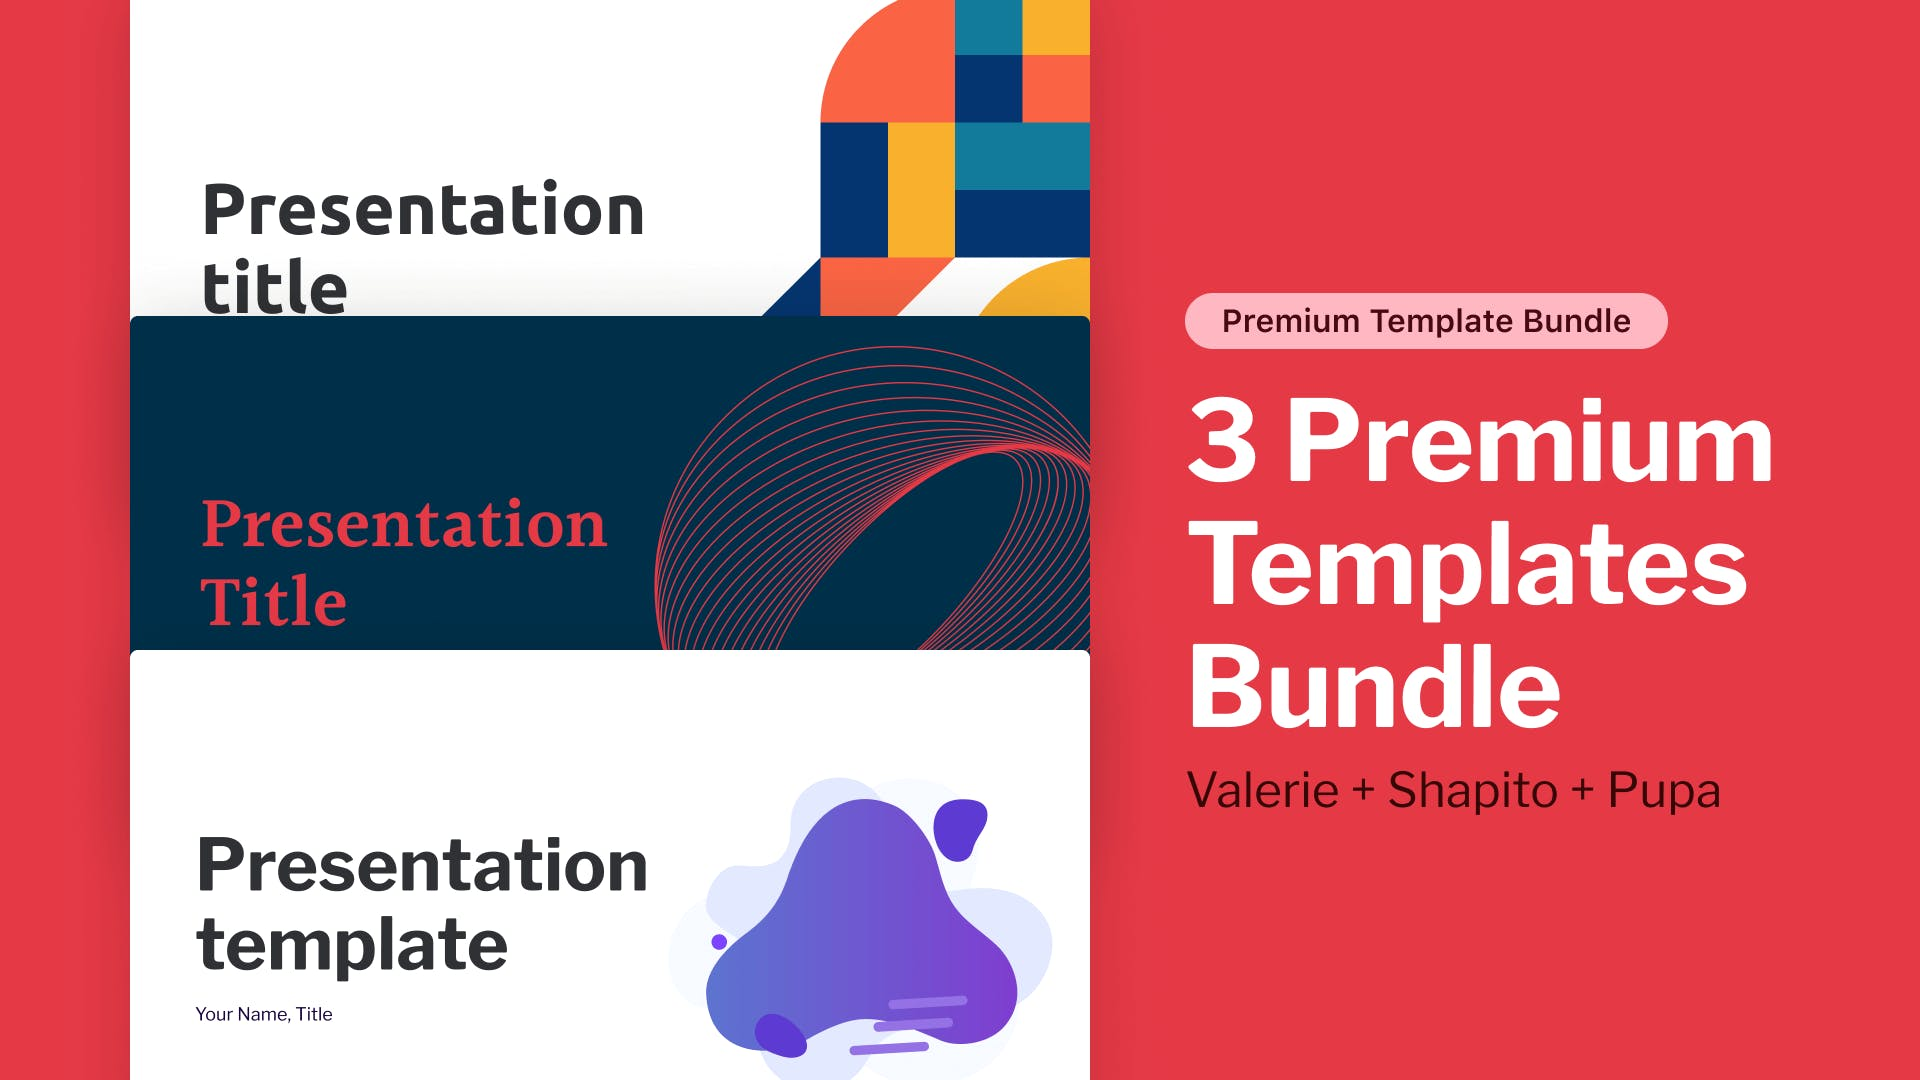 3 Premium Templates Bundle